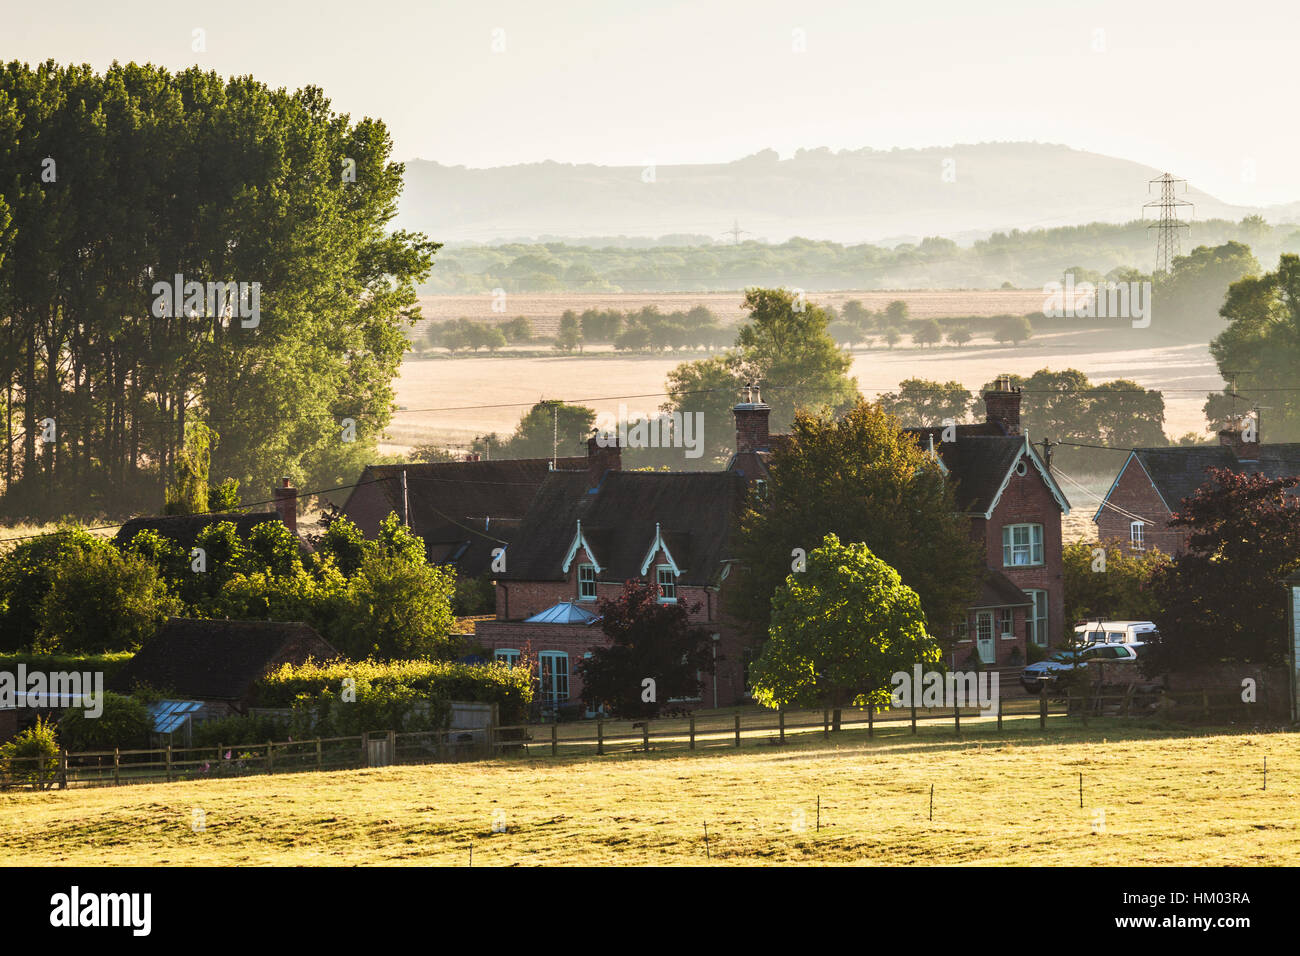 Typical English late summer landscape of rolling hills and farmland in Wiltshire, UK. - Stock Image